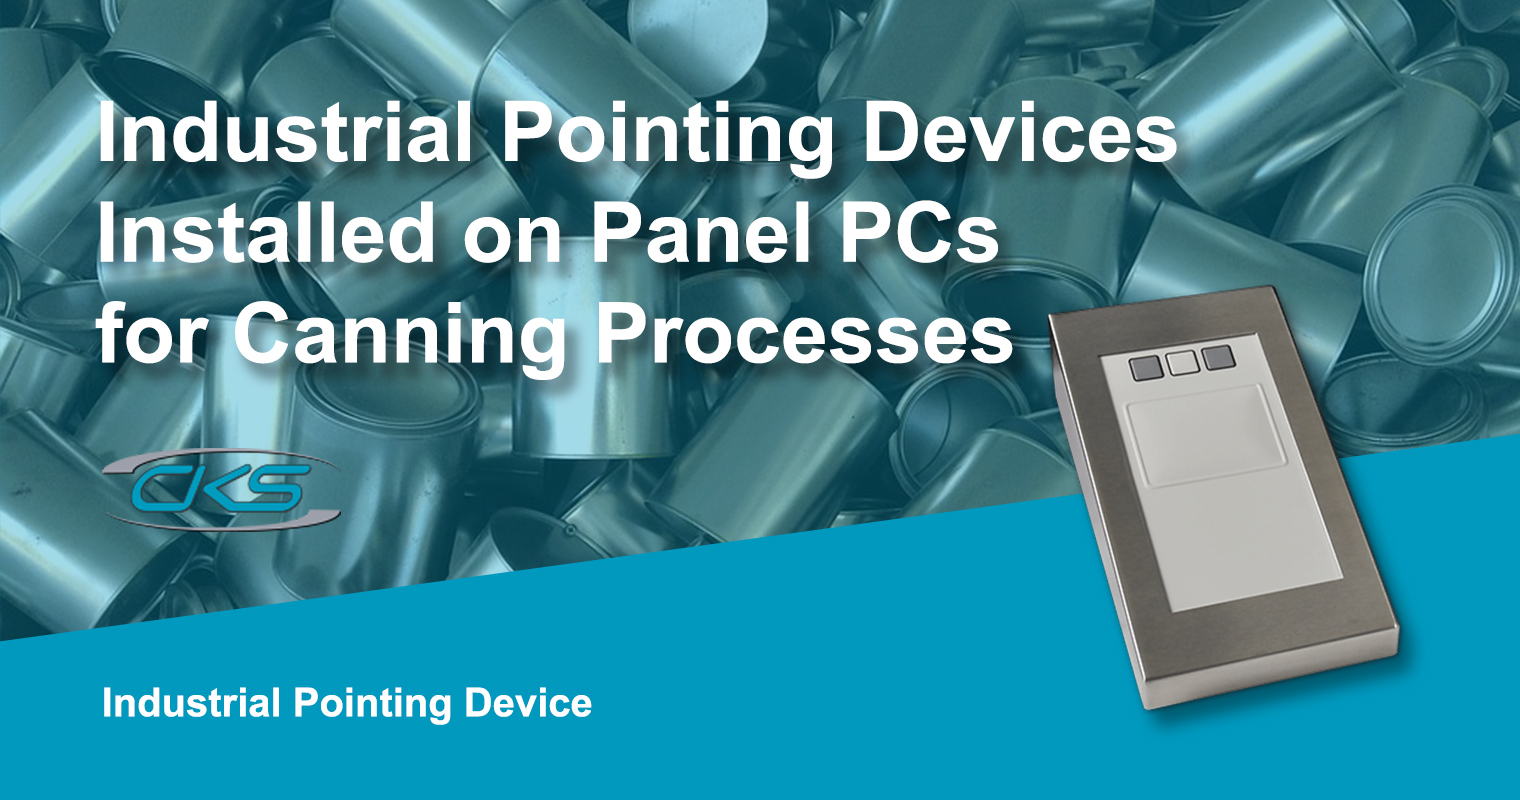 Embed PCs with Pointing Devices to Upscale Canning Operations